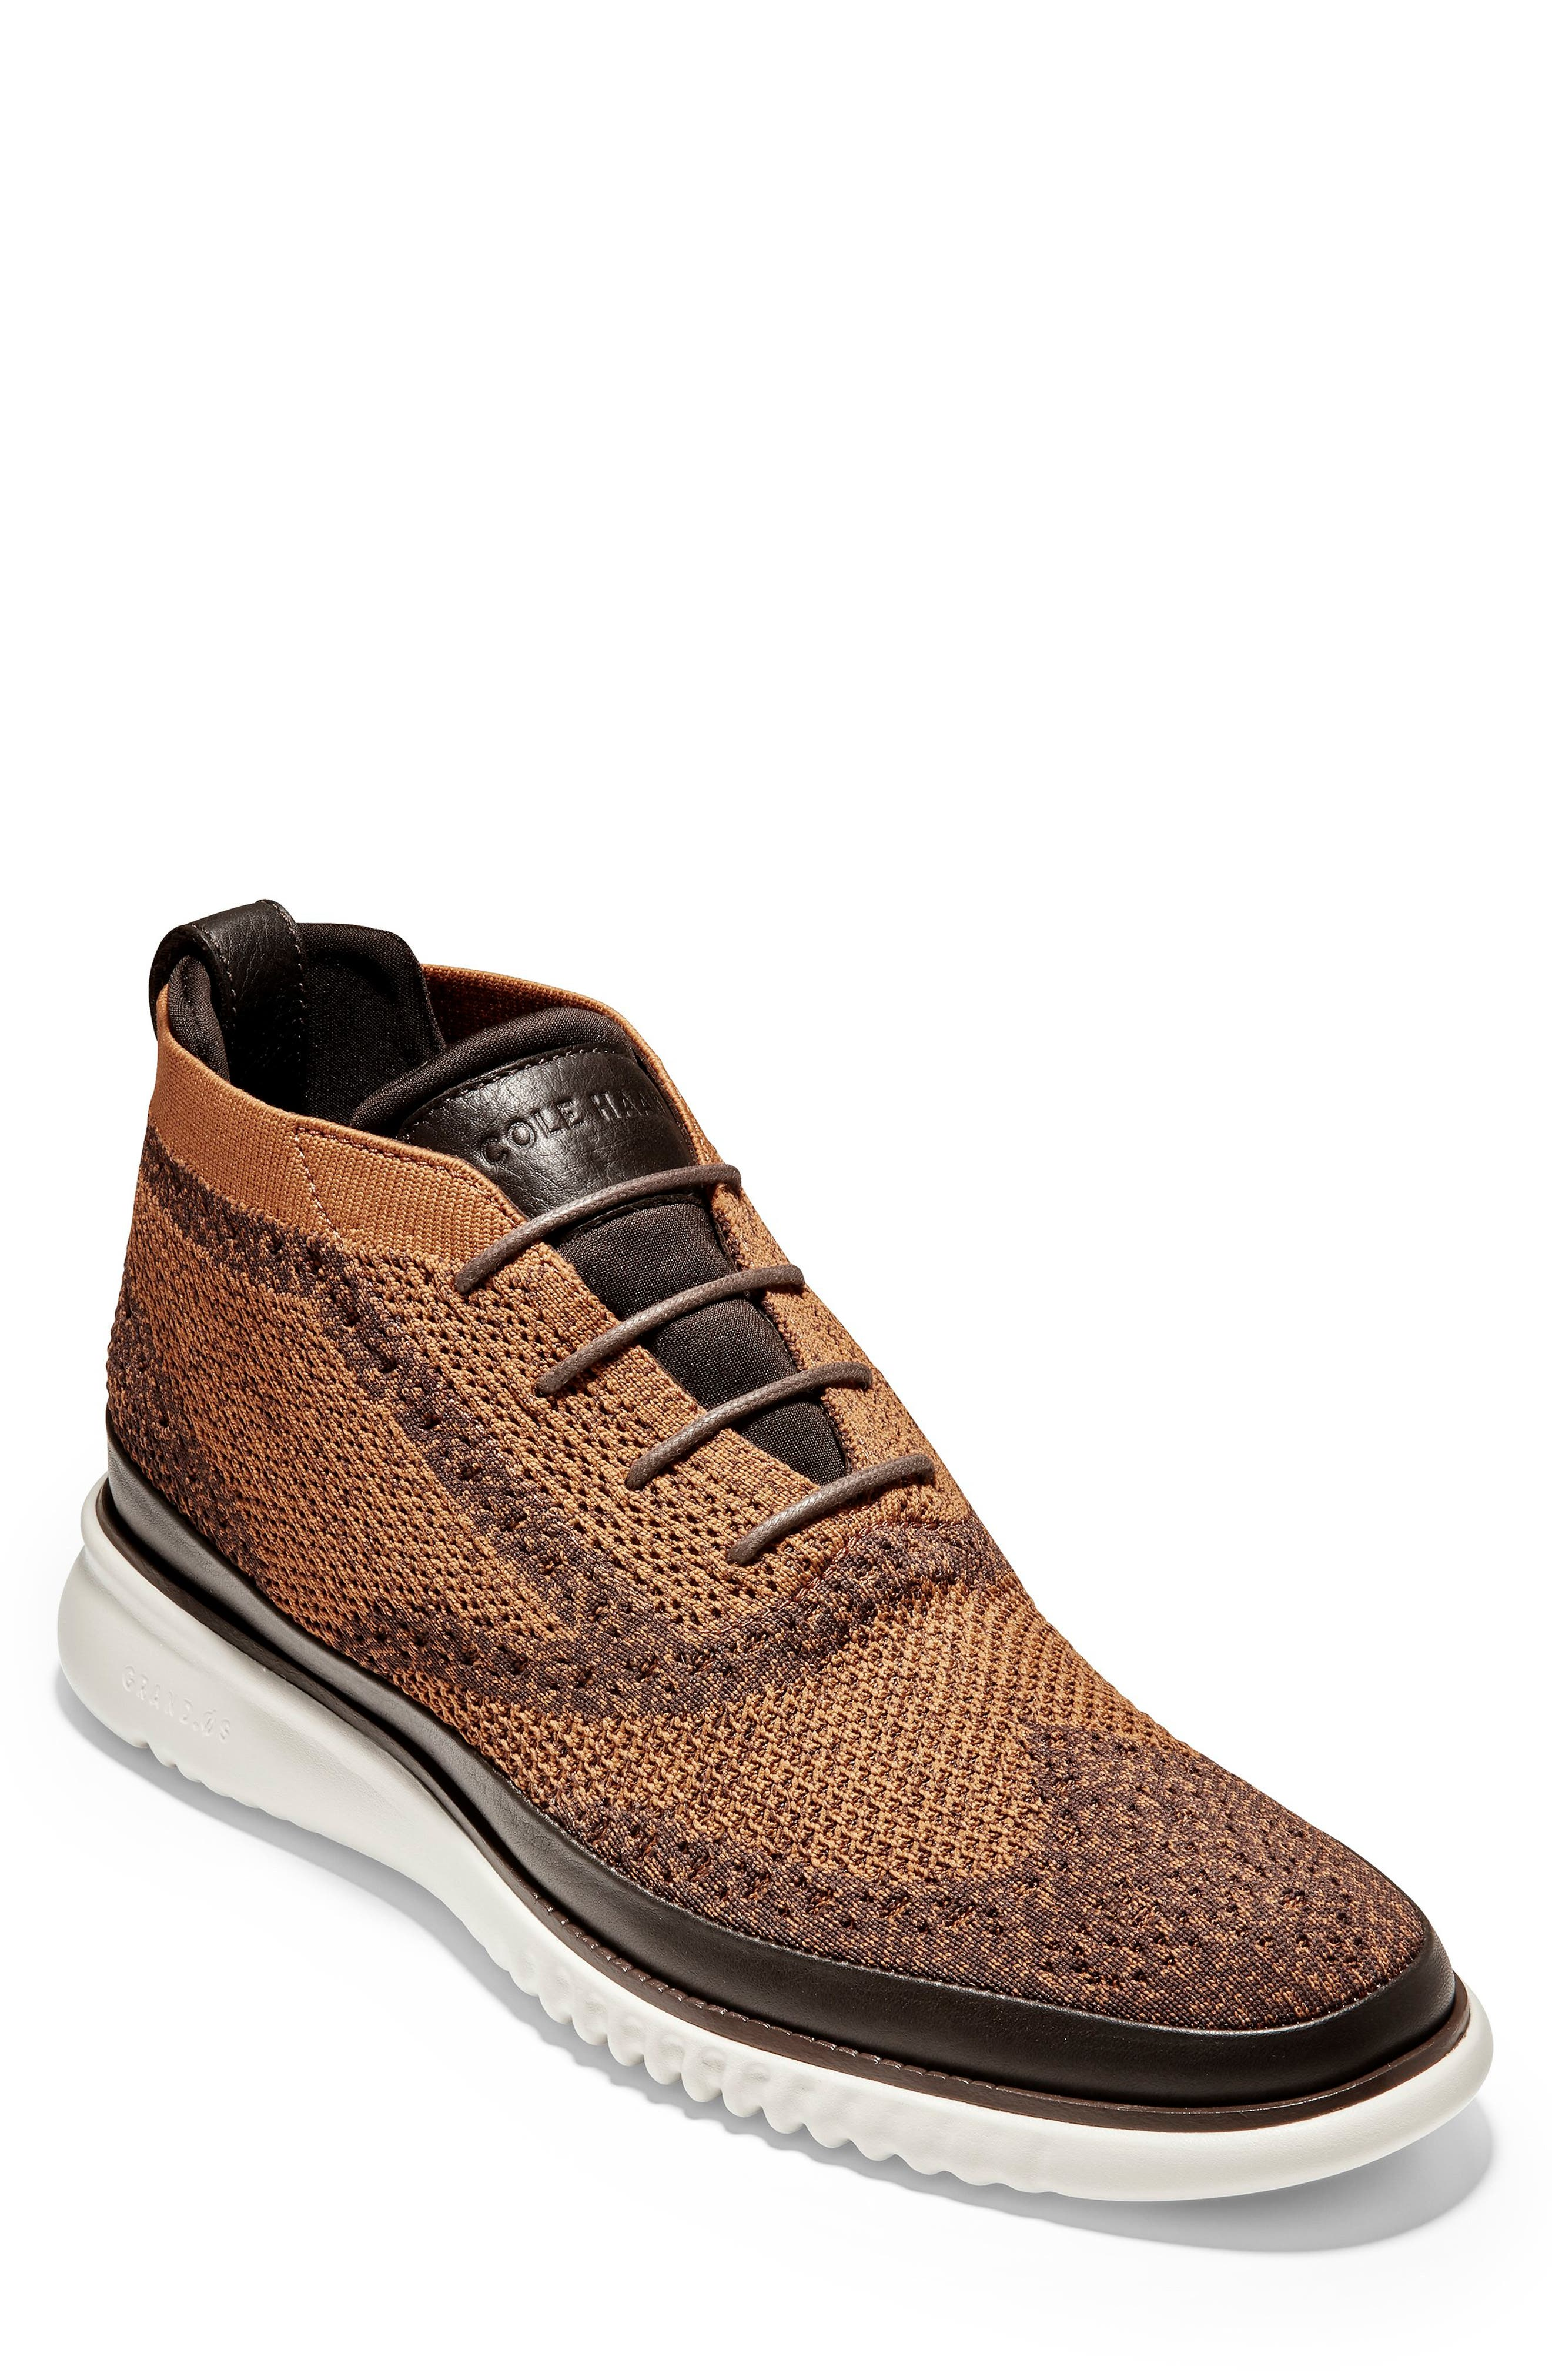 2.ZeroGrand Stitchlite Water Resistant Chukka Boot,                         Main,                         color, BROWN HEATHERED KNIT